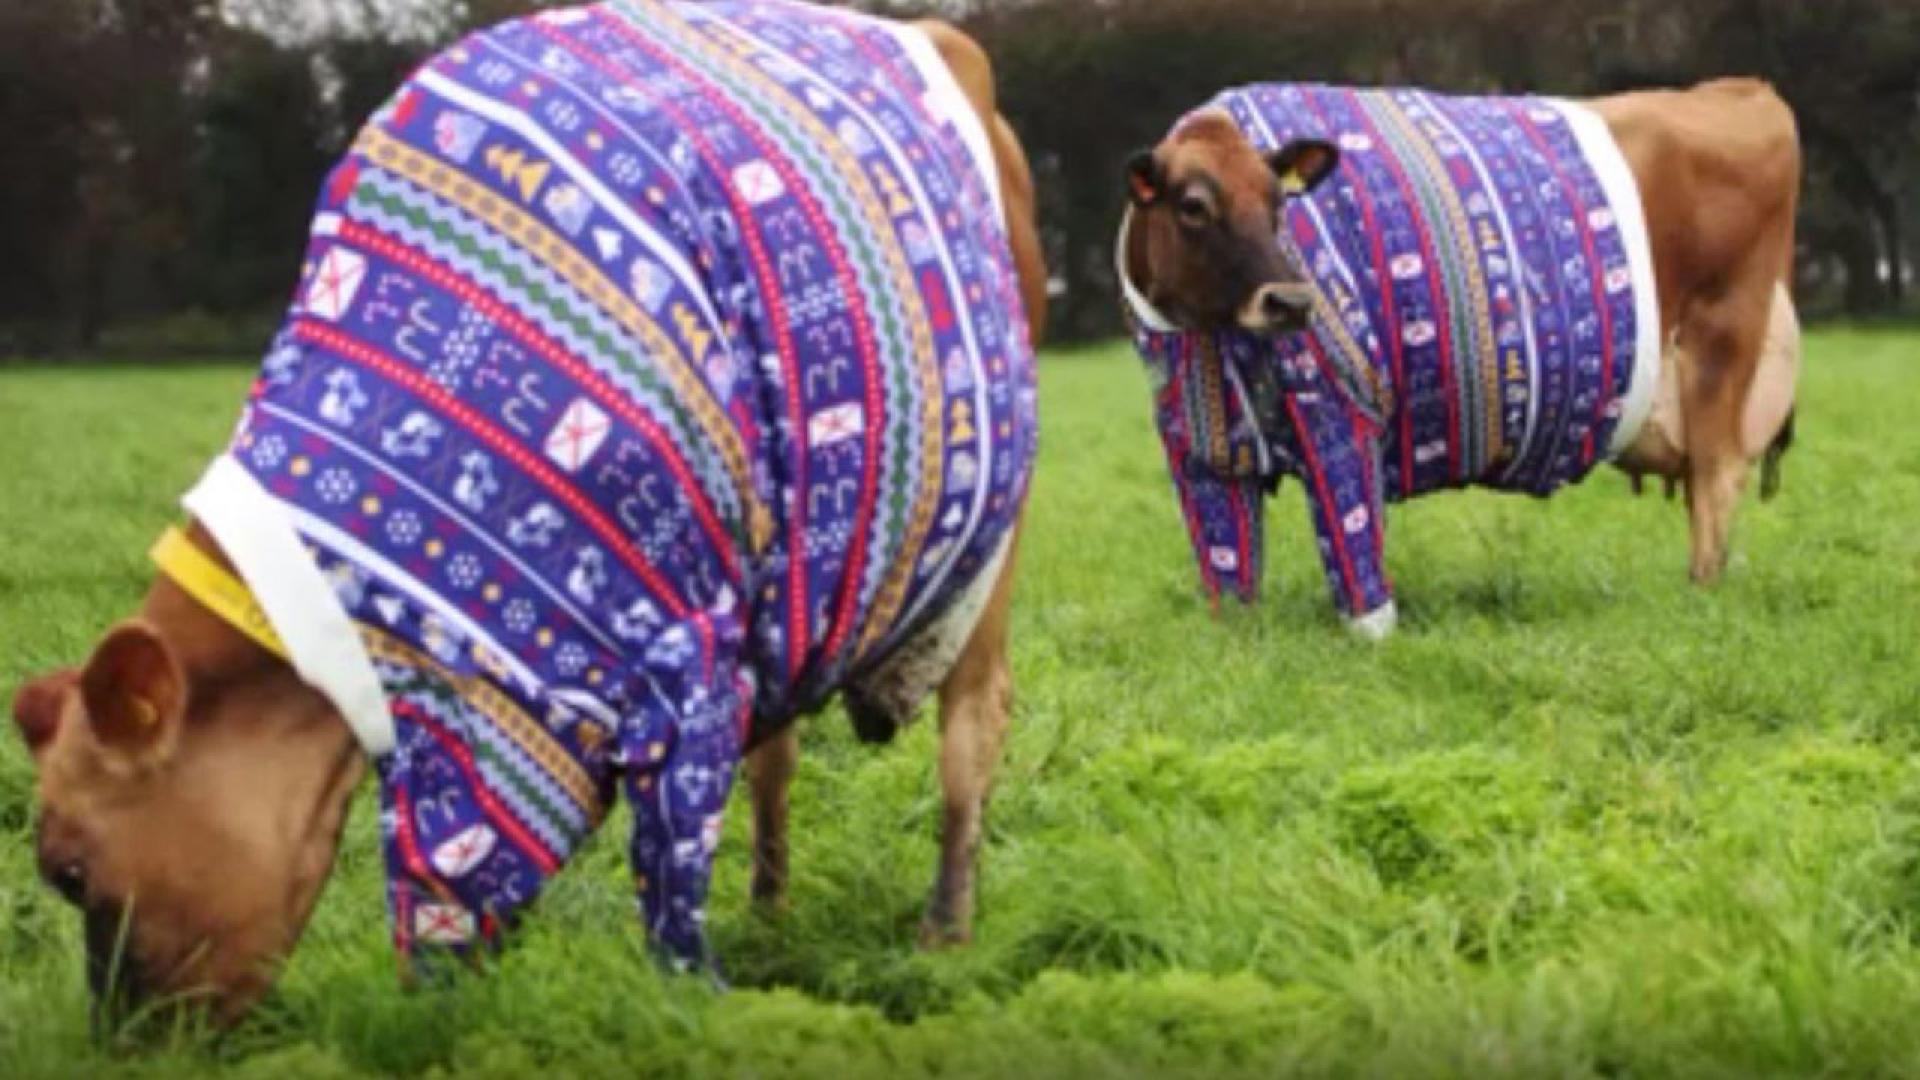 As part of an ad campaign by Visit Jersey, dairy farmer Becky Houze's cows are wearing matching Christmas sweaters.